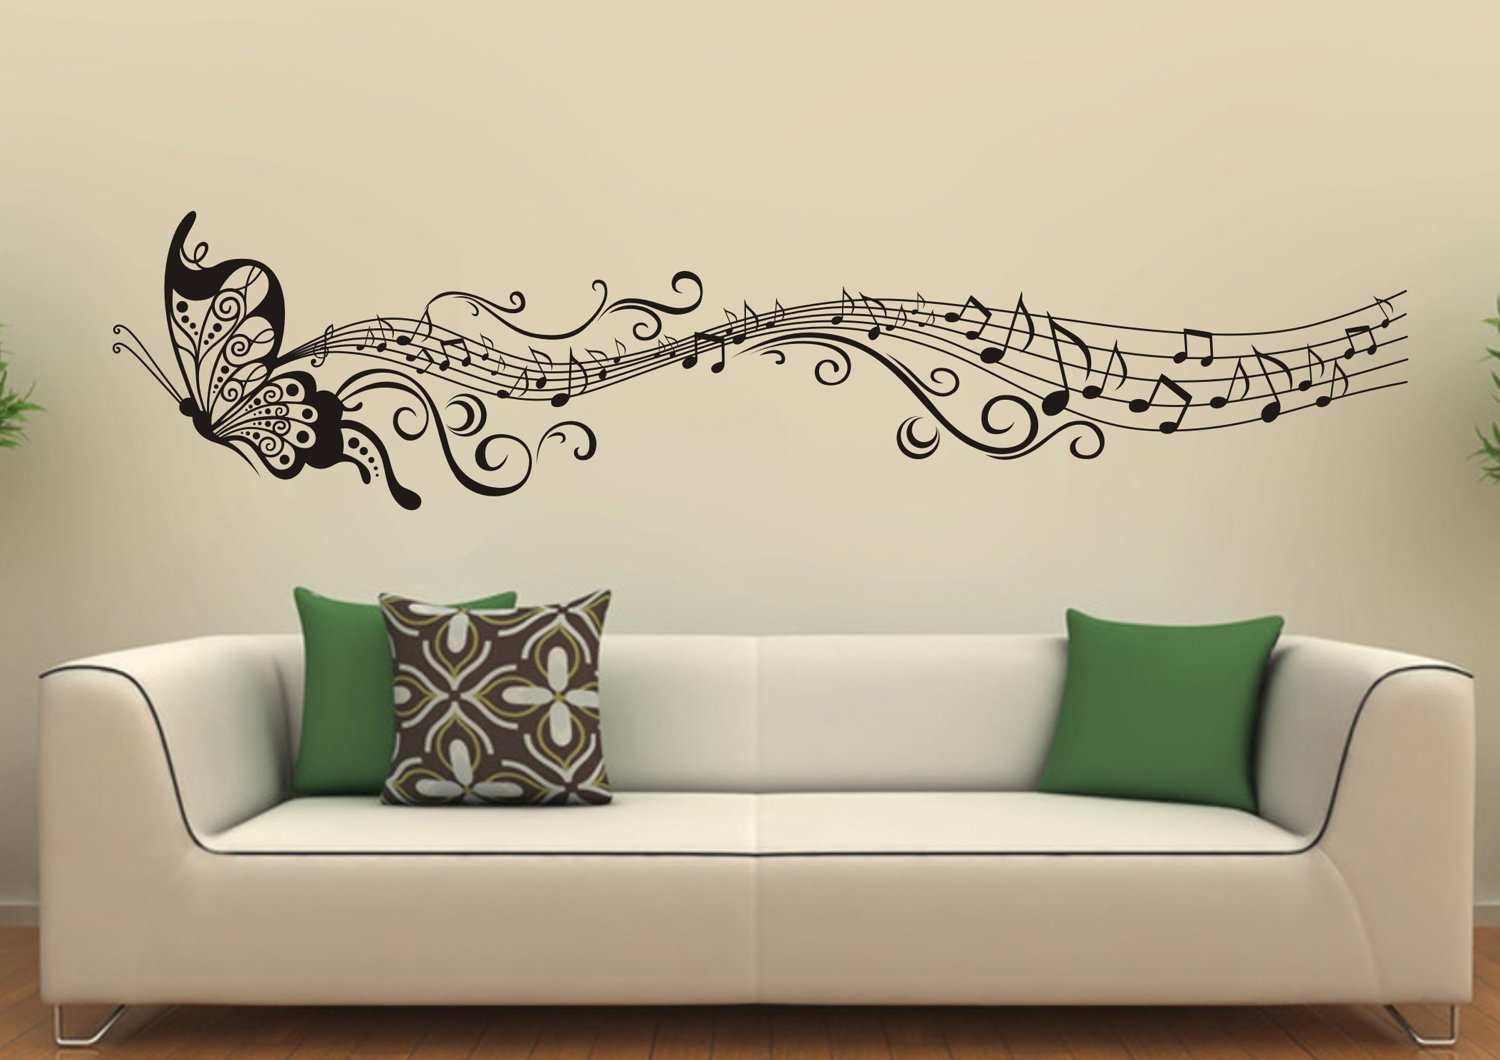 Wall Art Ideas Inspirational 30 Unique Wall Decor Ideas Godfather inside Unique Wall Art (Image 16 of 20)